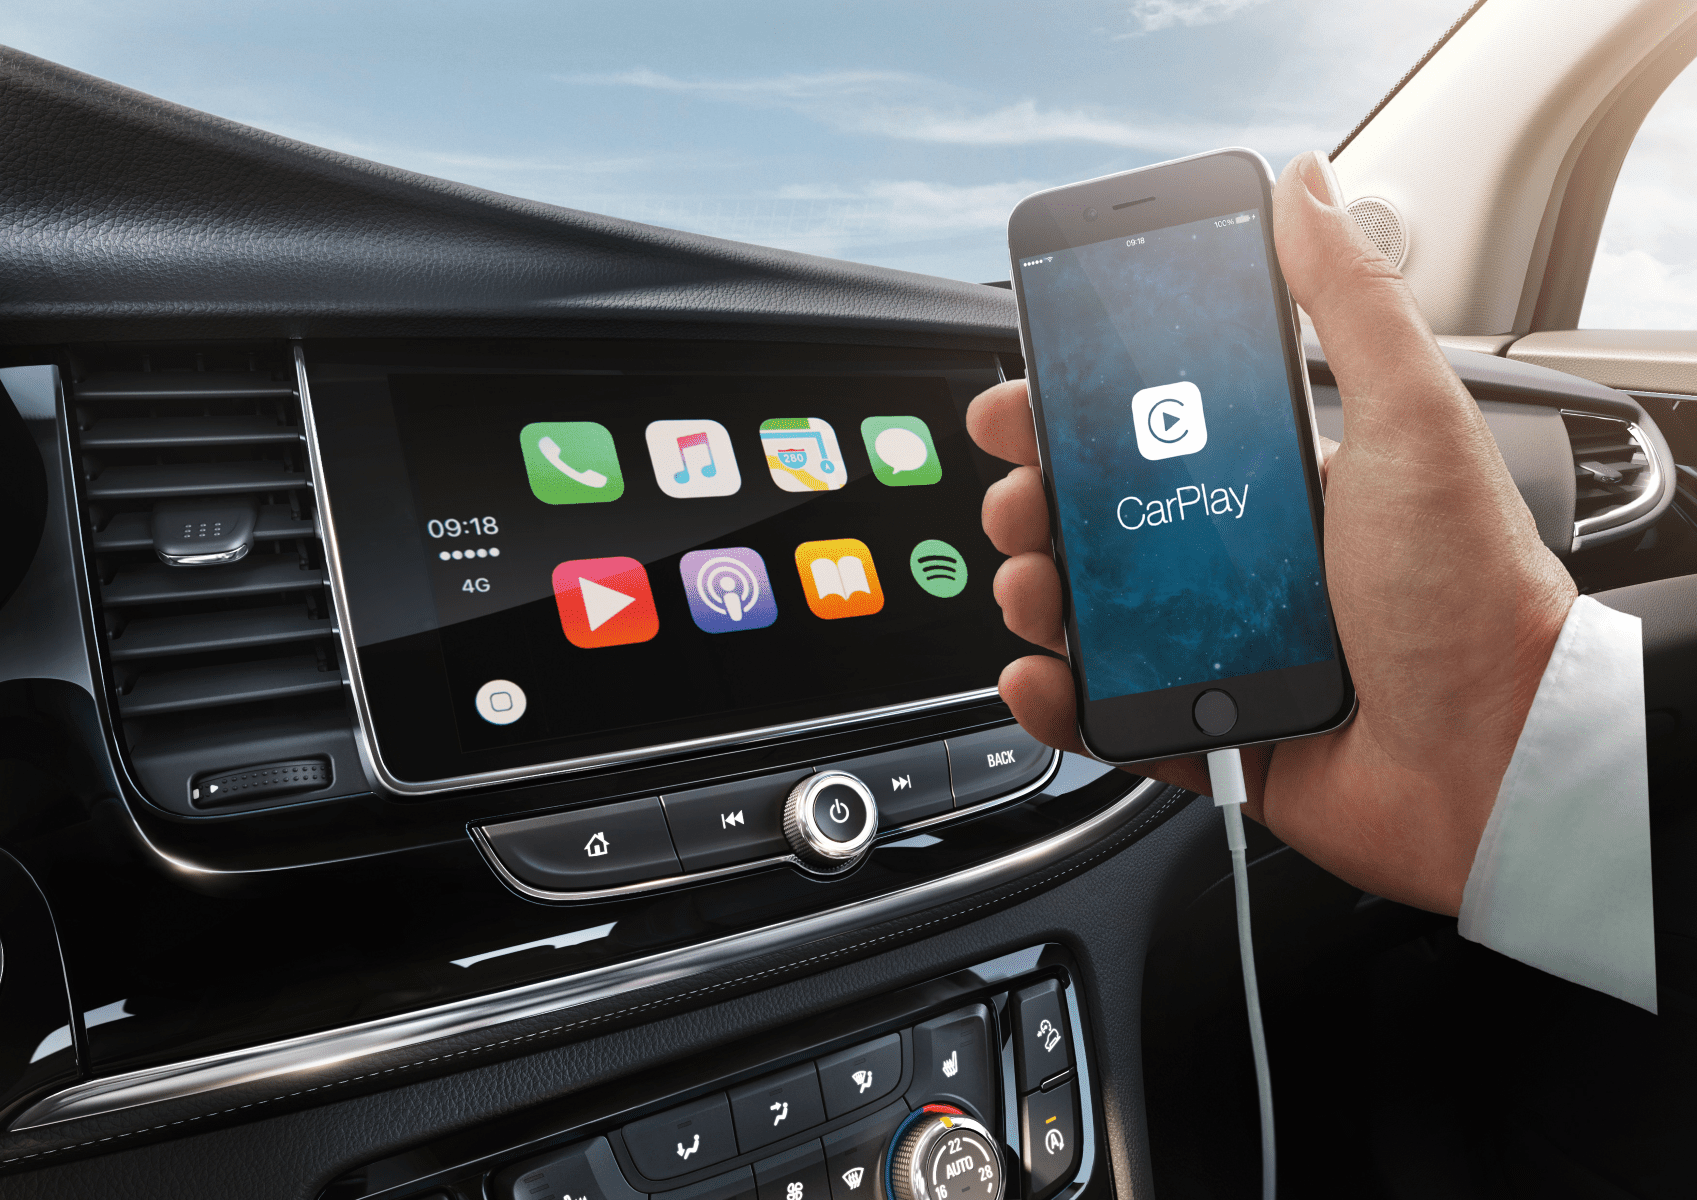 Apple CarPlay: What It Is and How to Connect to It